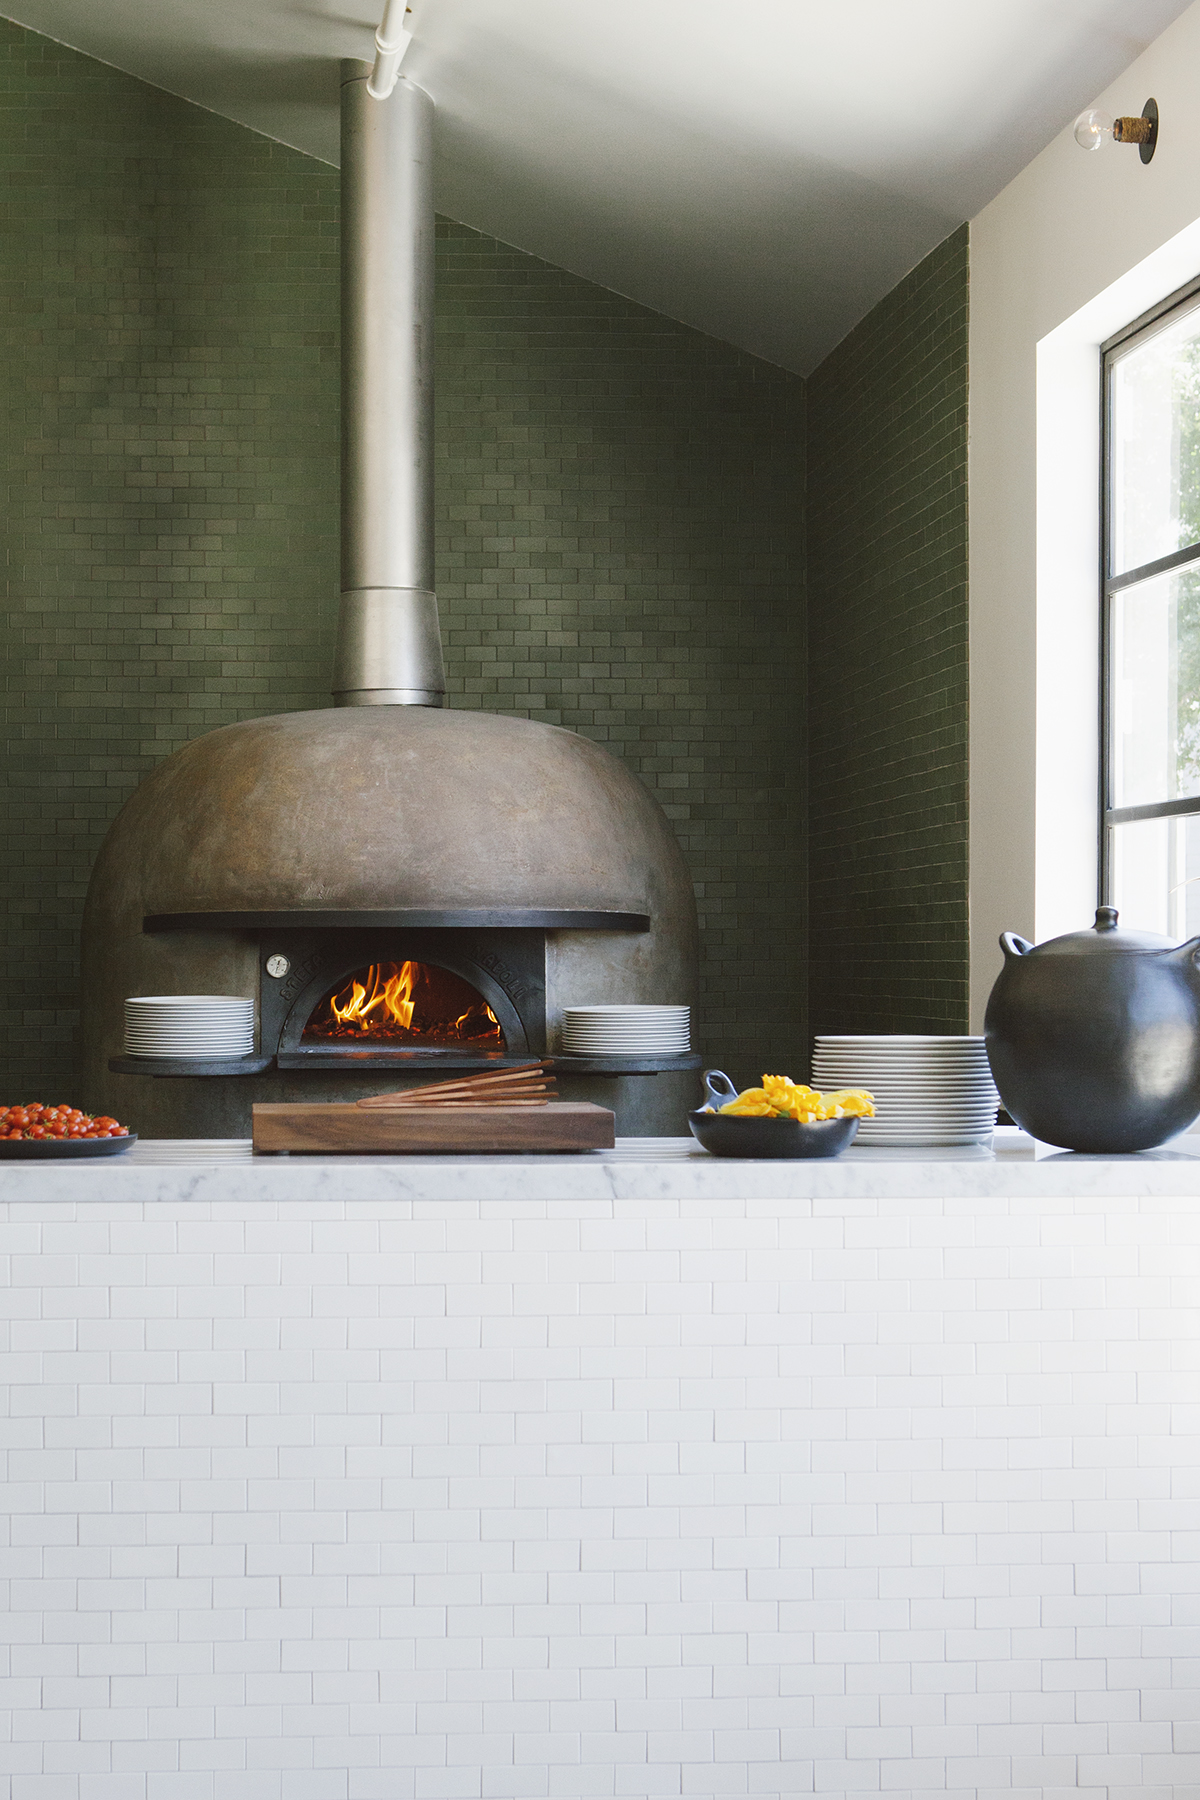 Katie Newburn | San Francisco Bay Area Food and Lifestyle Photographer | Farmshop Pizza Oven